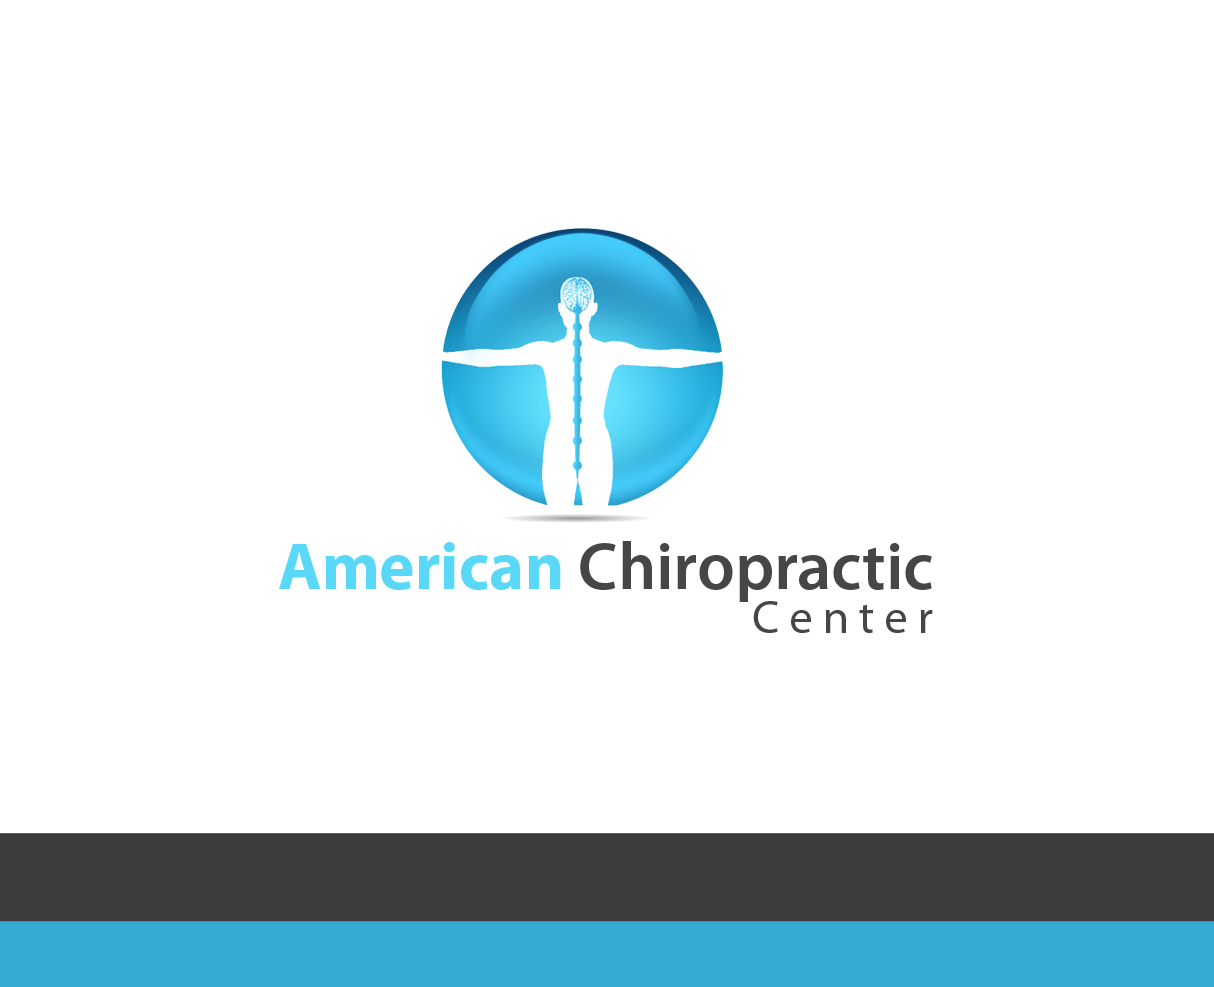 Logo Design by Kot Design - Entry No. 155 in the Logo Design Contest Logo Design for American Chiropractic Center.